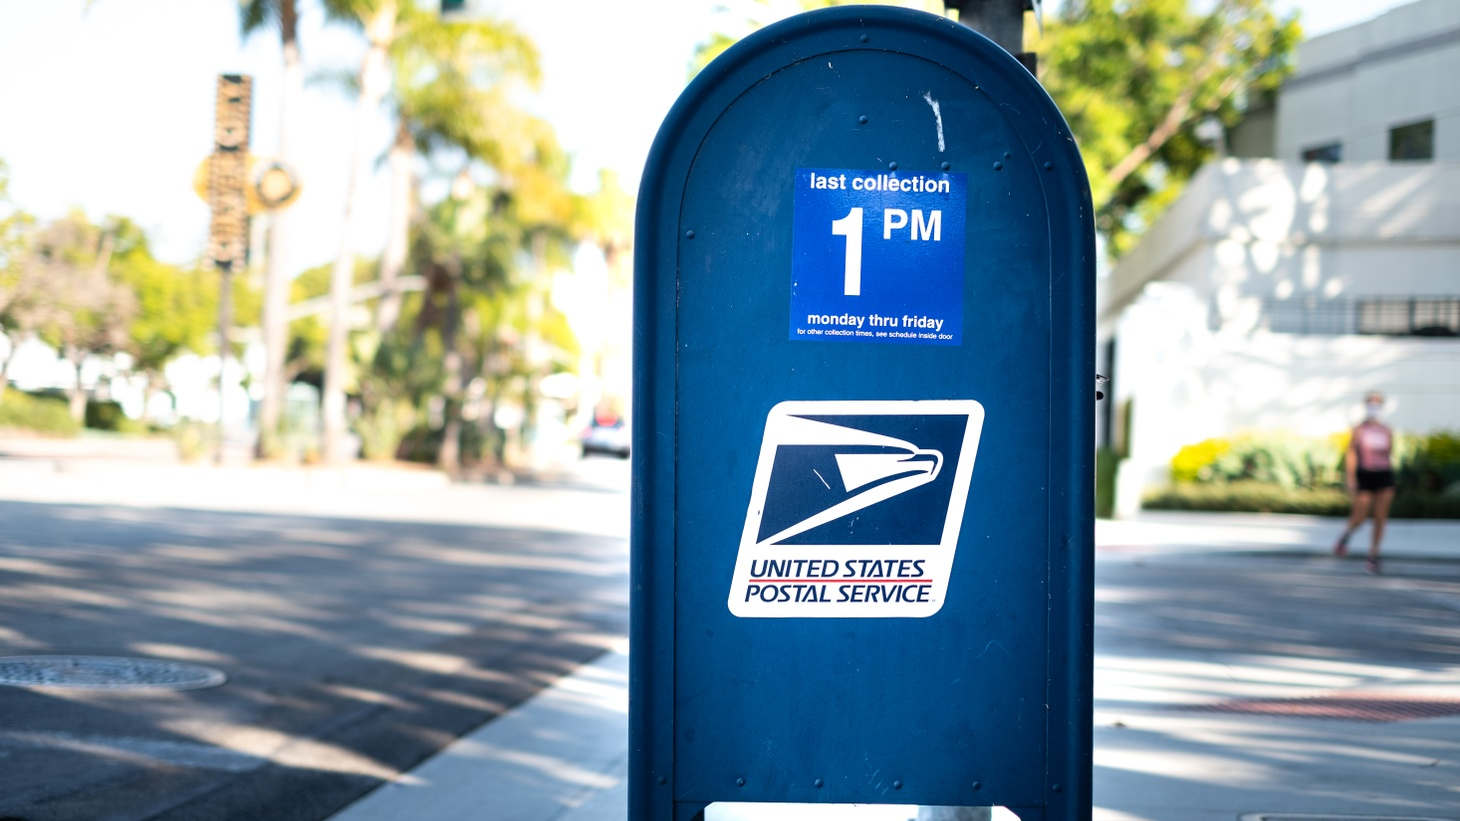 The United States' new postmaster general, Louis DeJoy, pledged that he and the postal service will do everything in their power to get the November ballots out, says Politico White House reporter Anita Kumar.